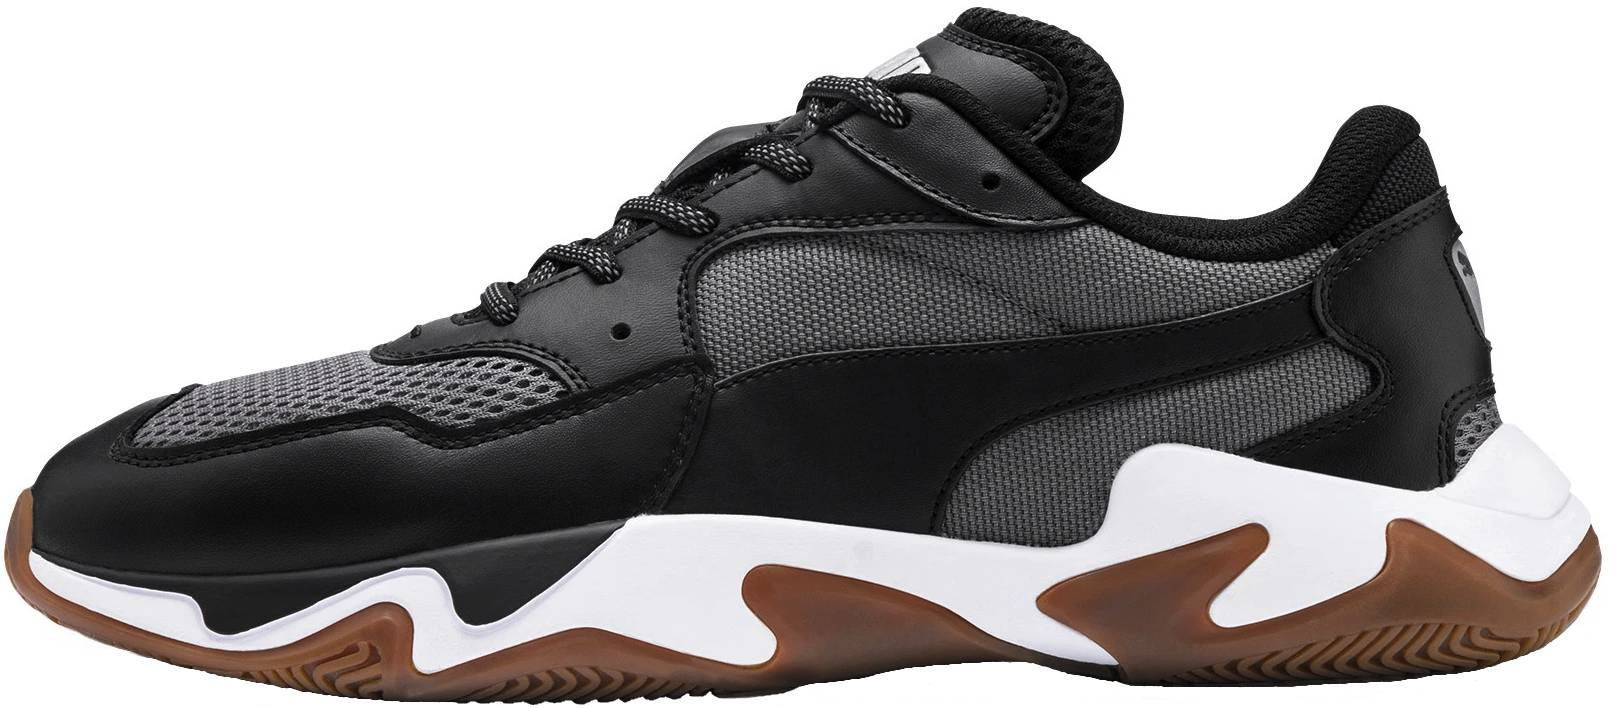 Puma Storm Pulse sneakers in 3 colors (only $45)   RunRepeat